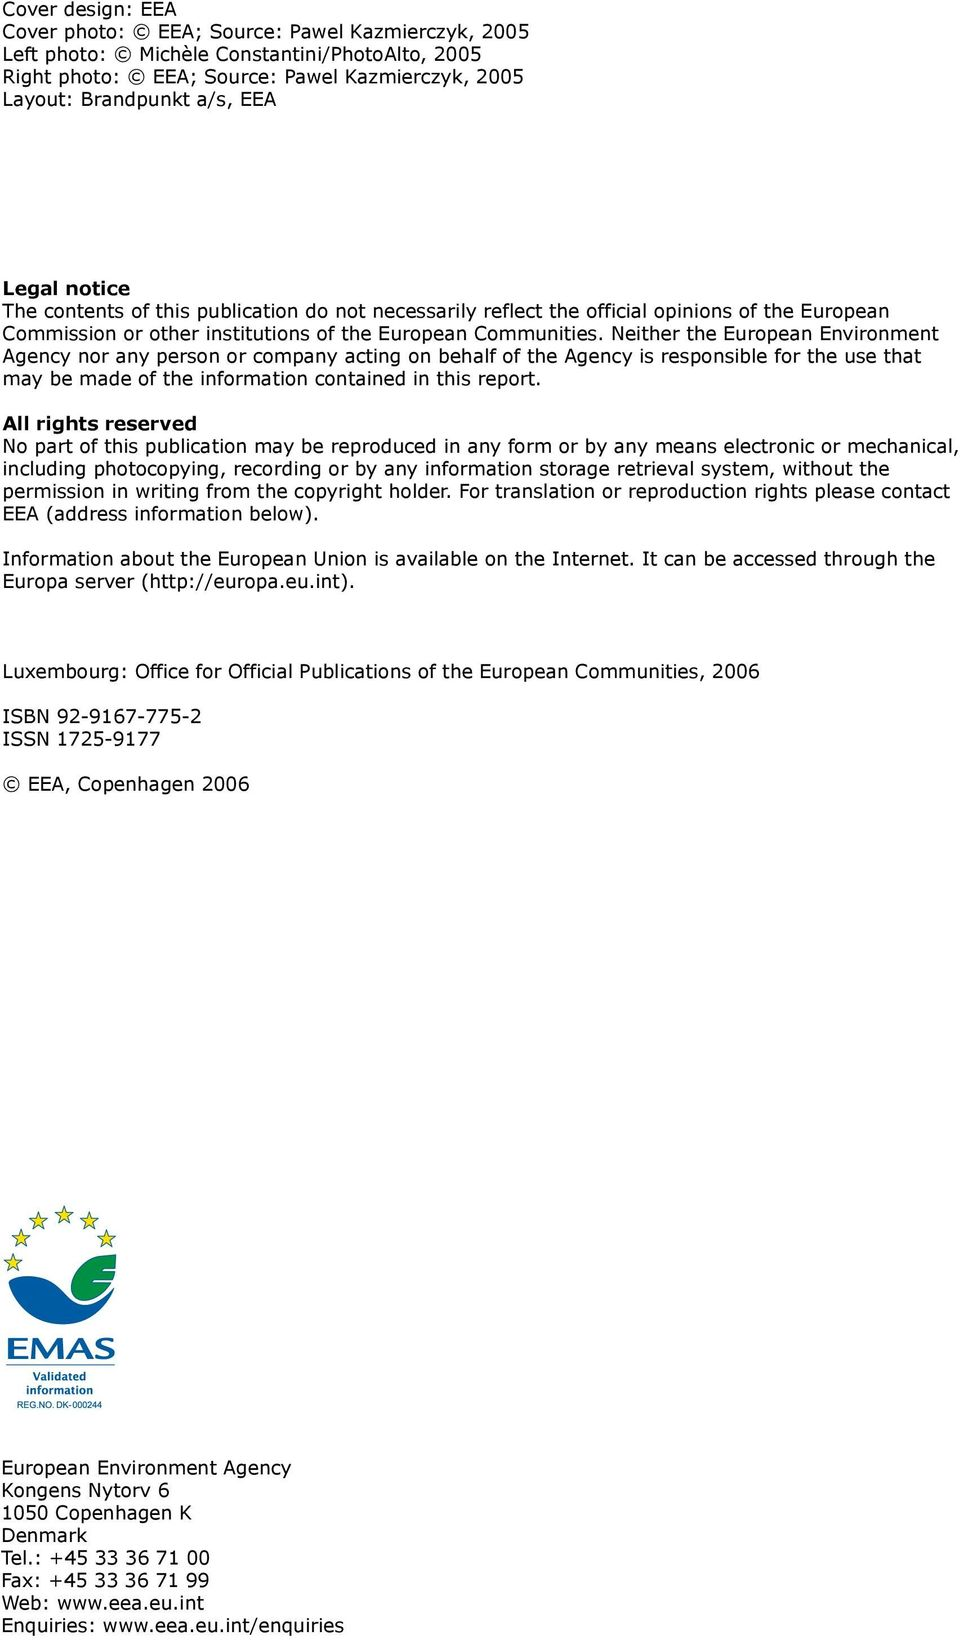 Neither the European Environment Agency nor any person or company acting on behalf of the Agency is responsible for the use that may be made of the information contained in this report.